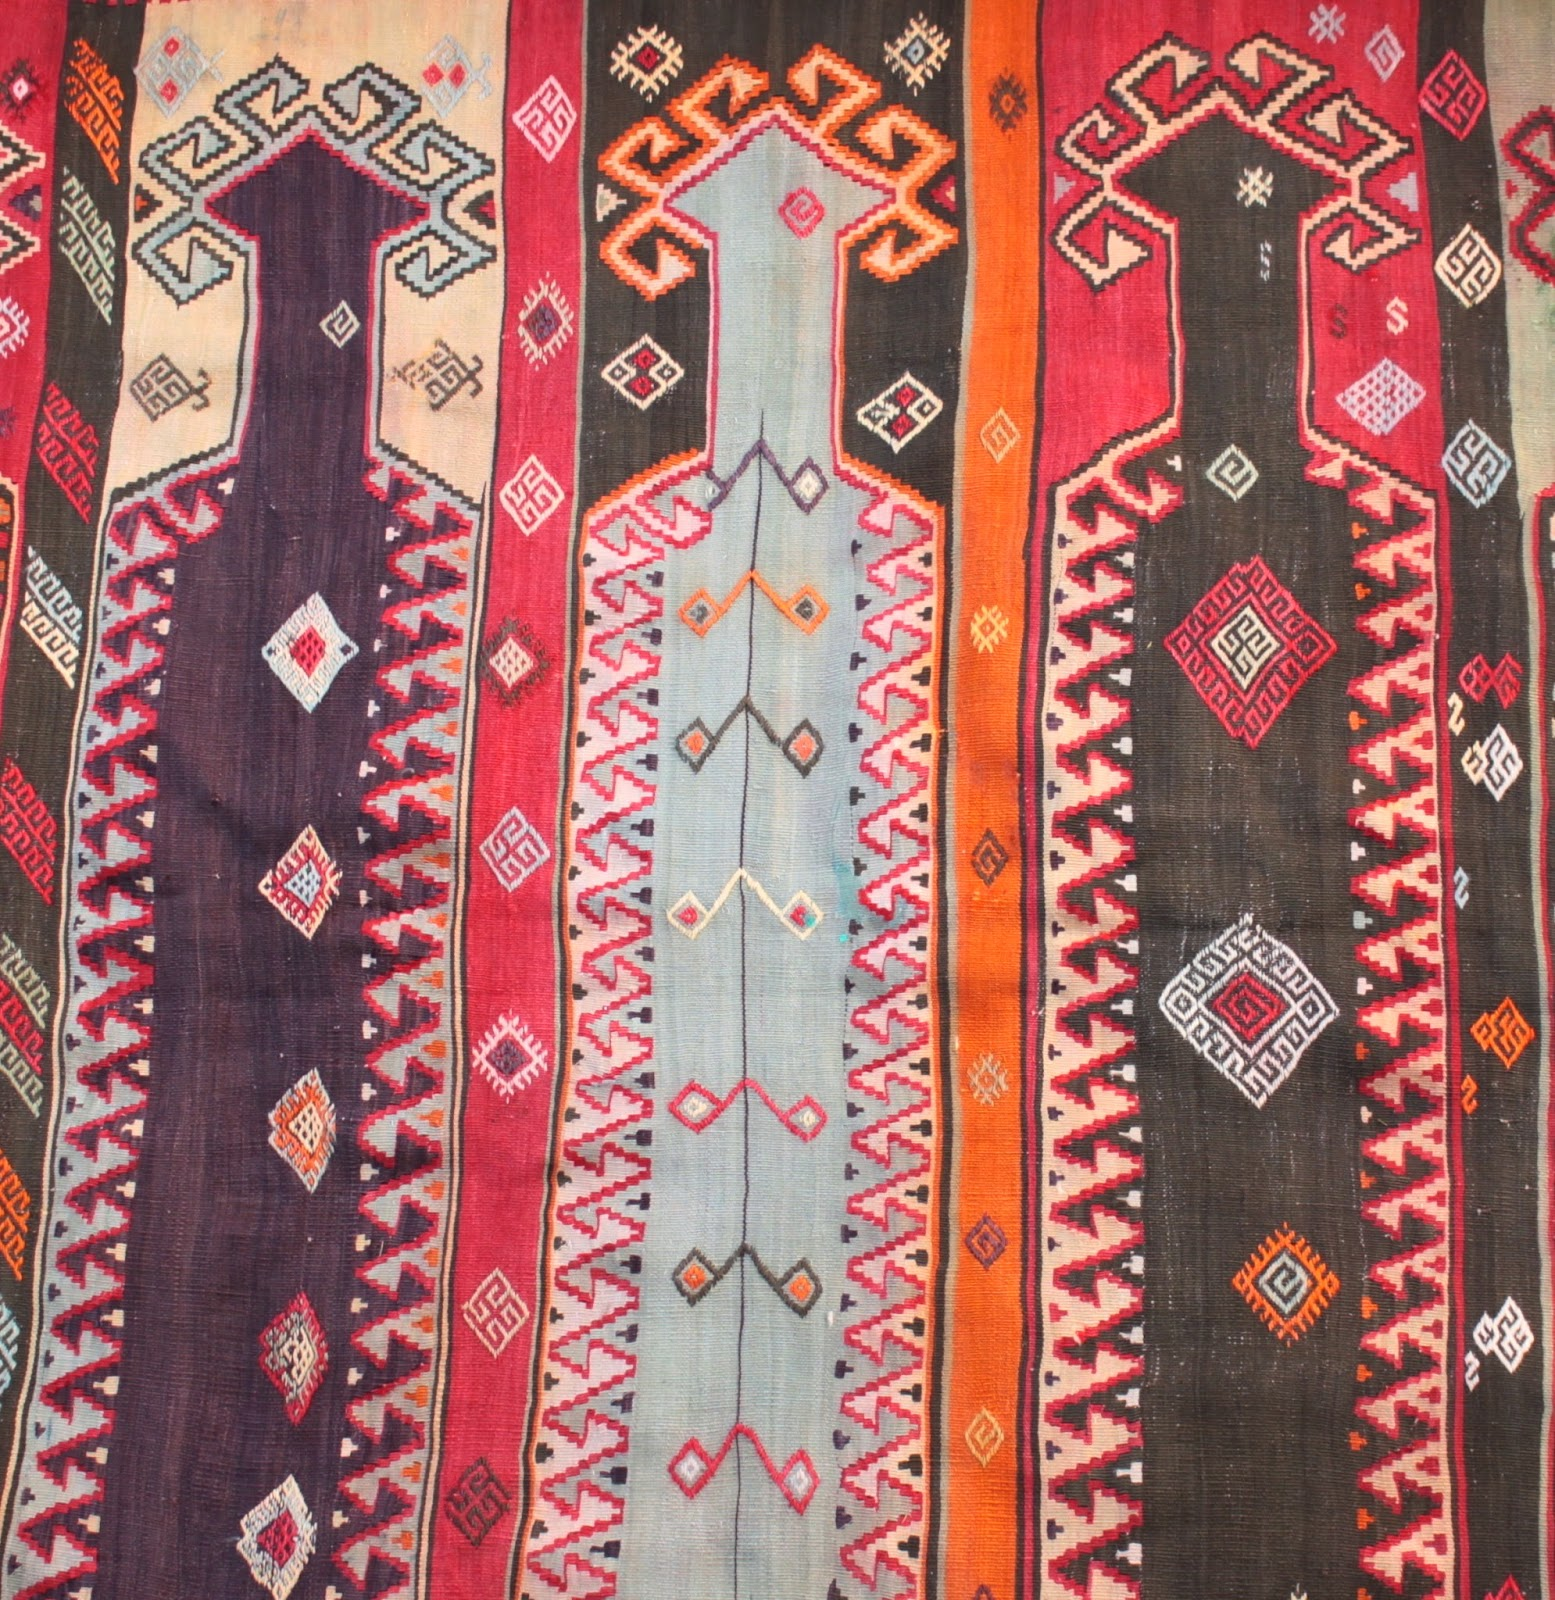 Anatolian Kilim Rugs, Antiques And Tribal Textiles: An